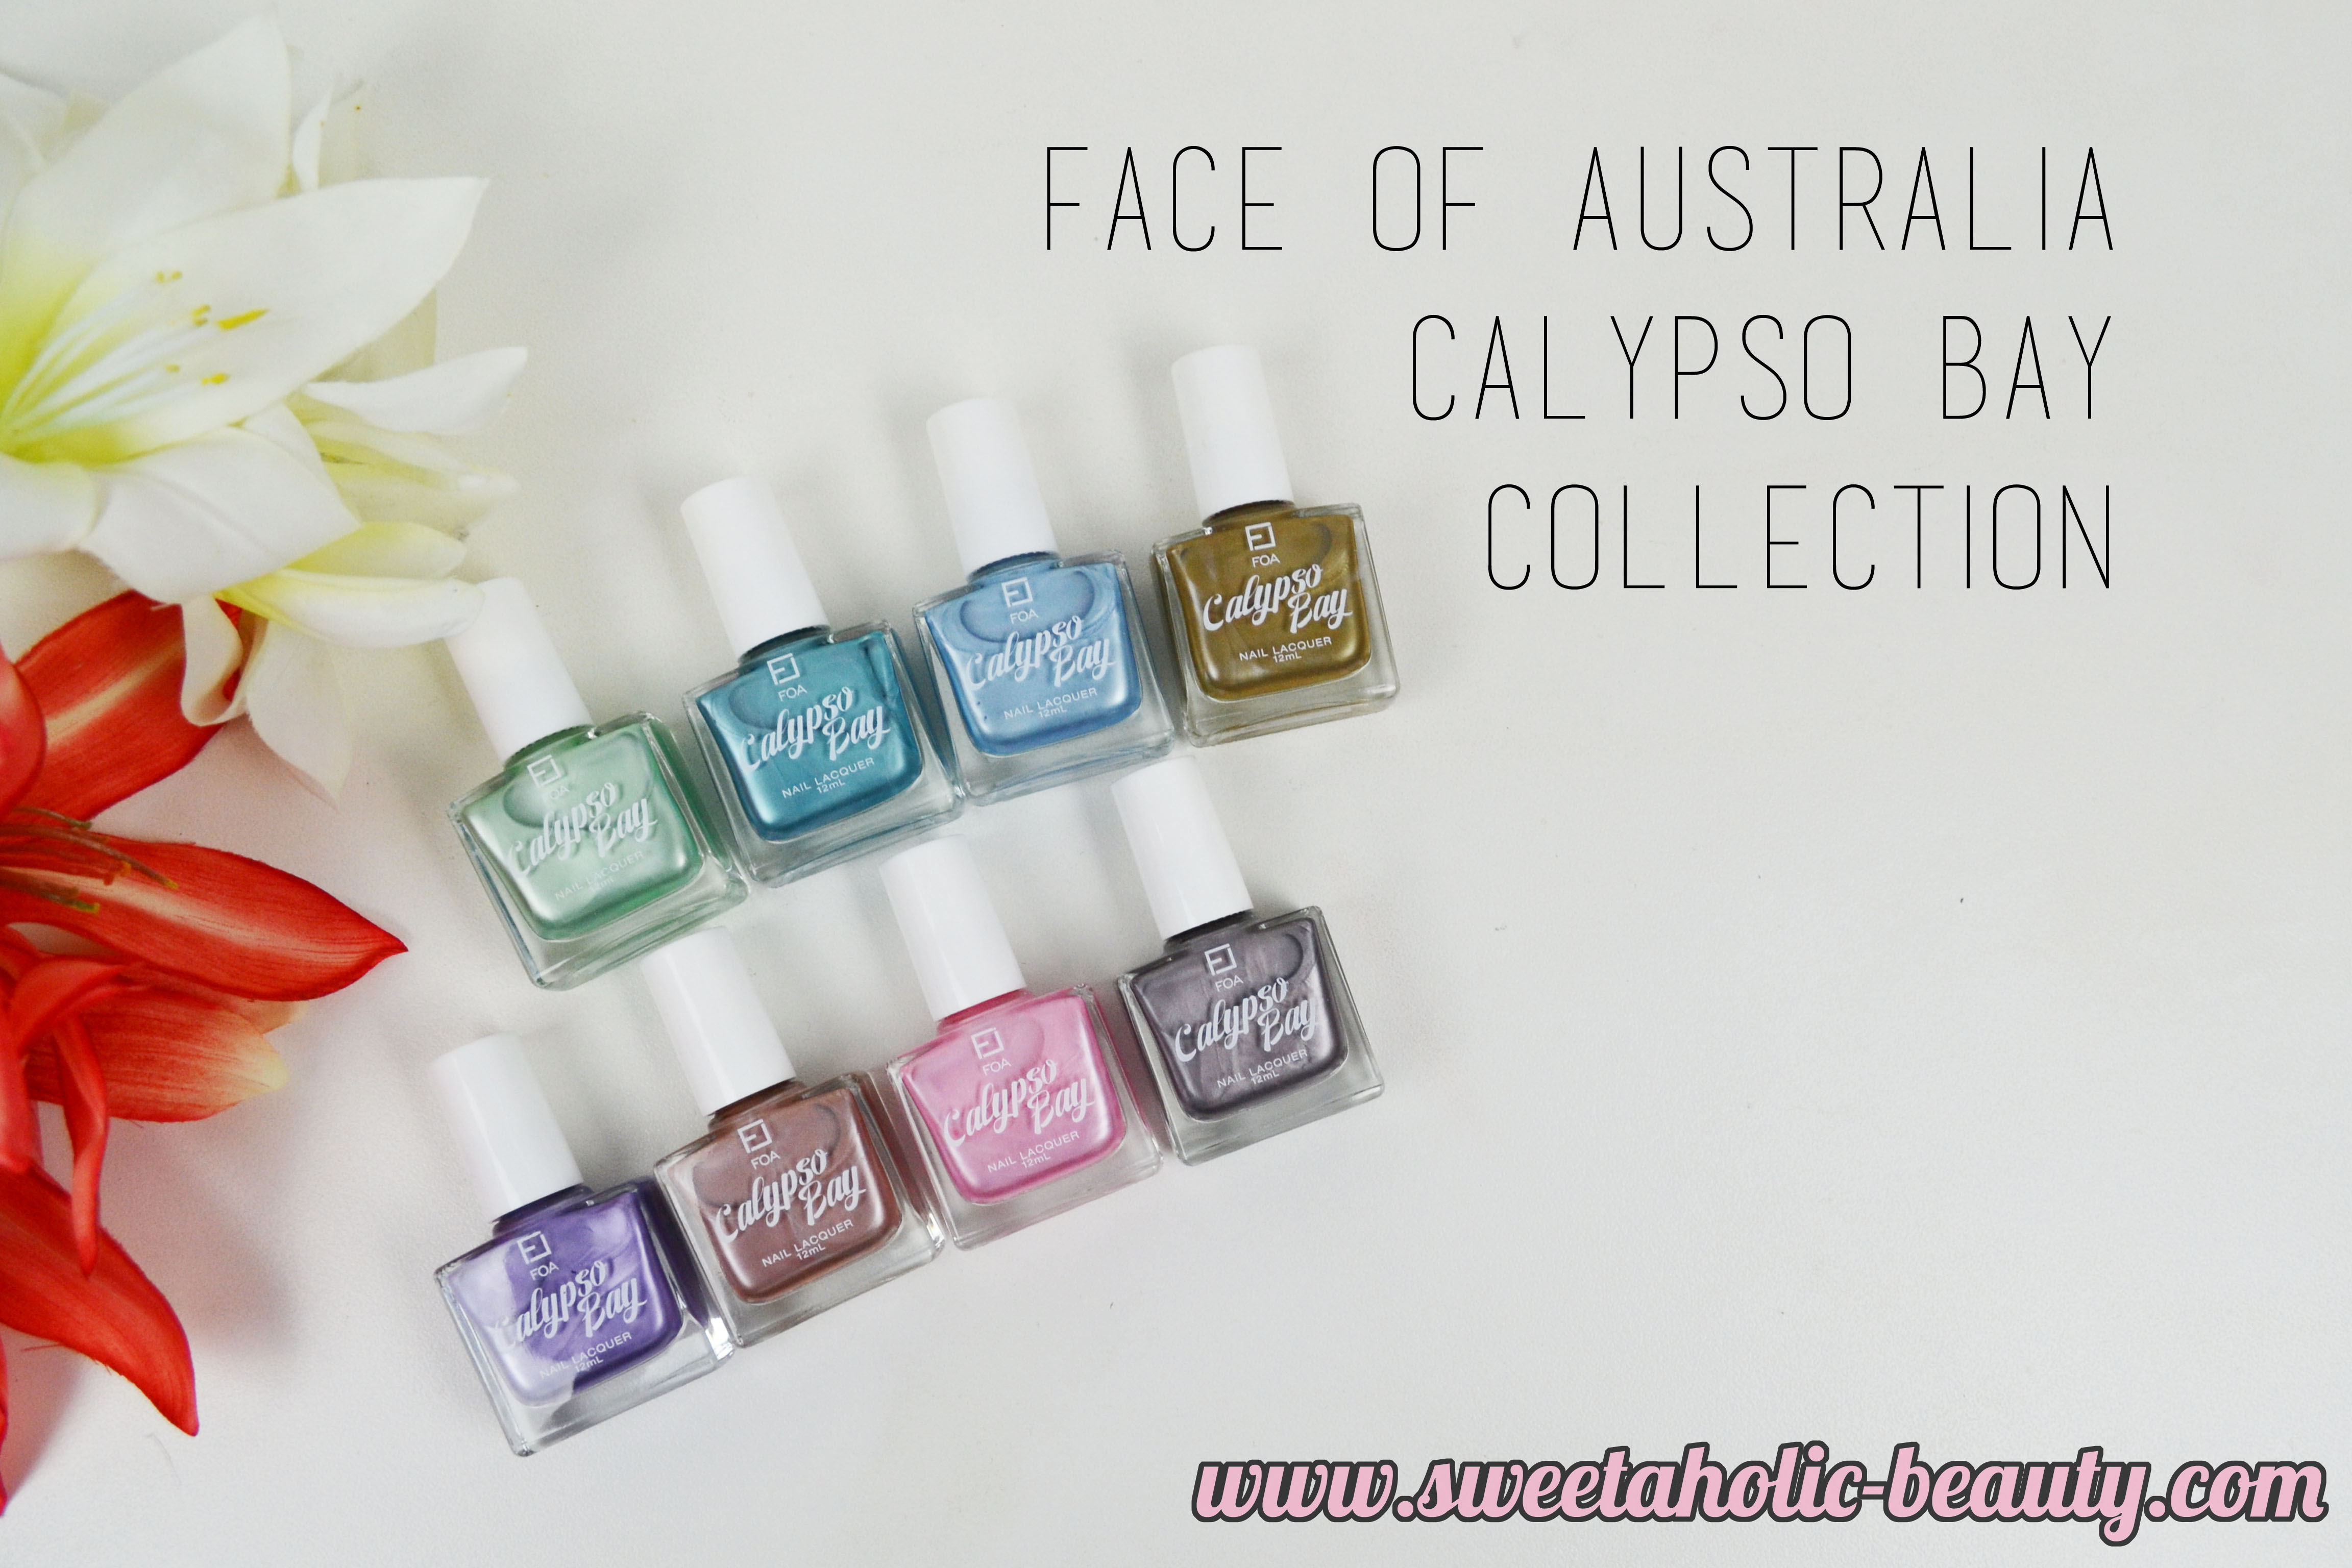 Face of Australia Calypso Bay Nail Enamel Collection Review & Swatches - Sweetaholic Beauty